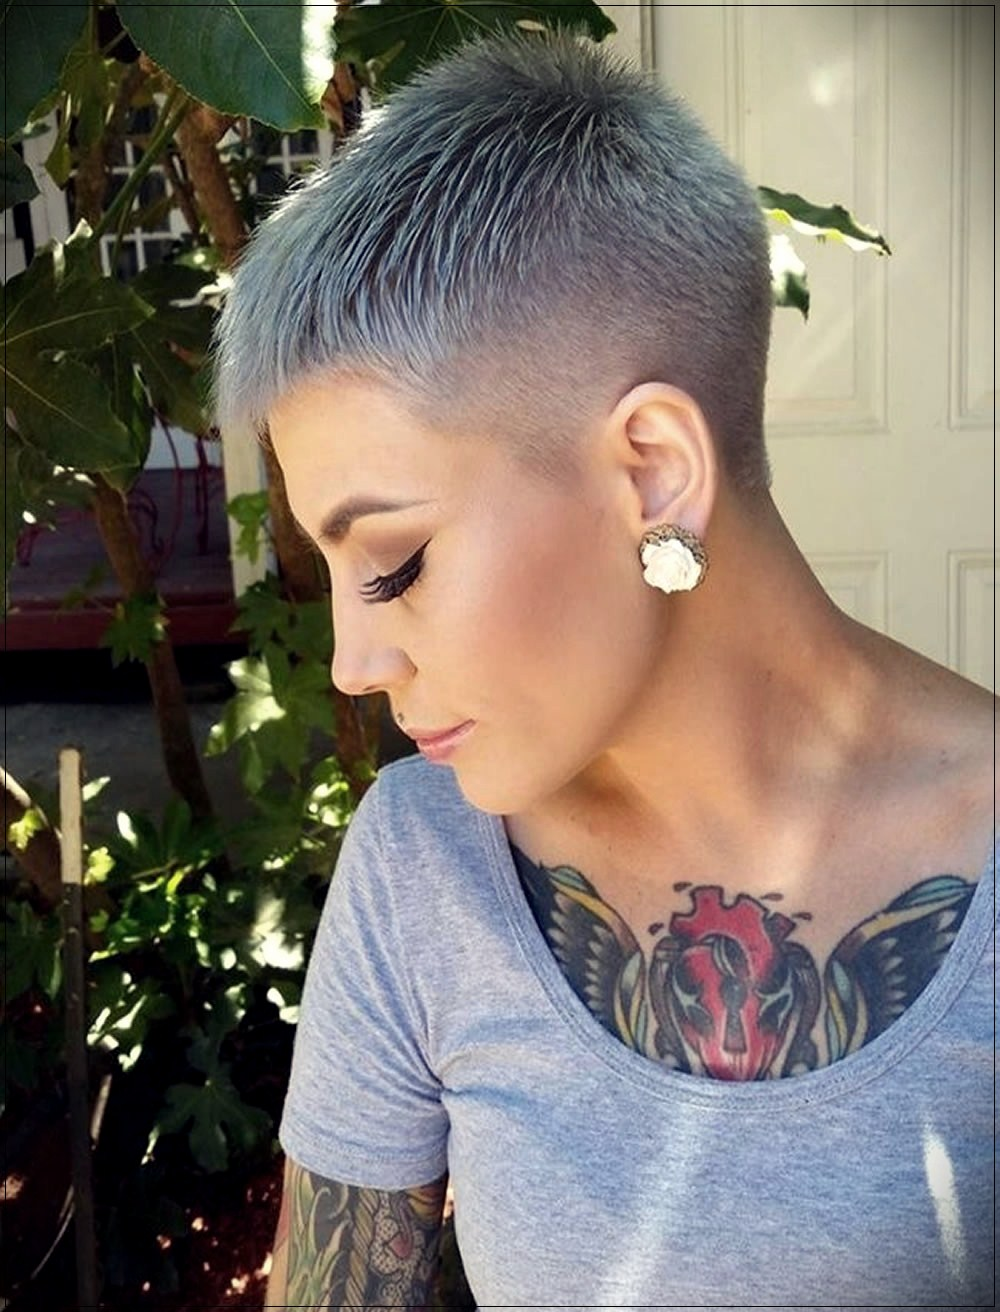 Pixie cuts for 2018 are what are in! - Pixie cuts for 2018 12